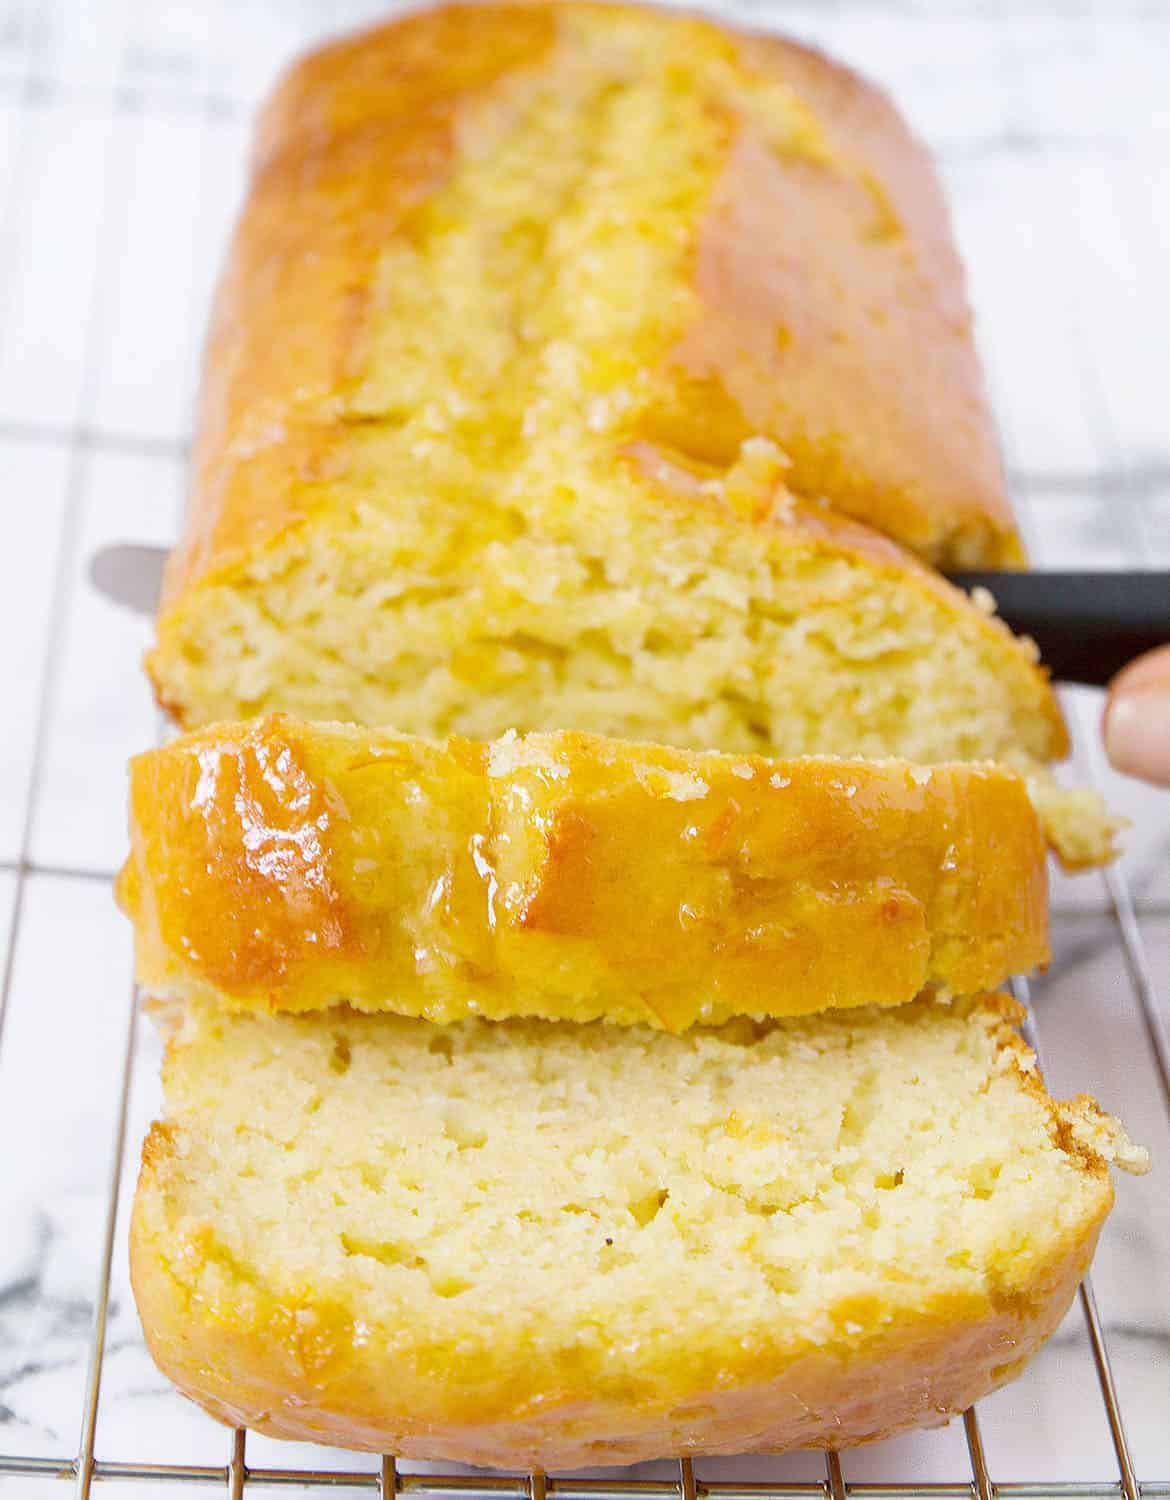 This yogurt cake is a must, not only is it good, low sugar and packed with nutrients, but it's also inexpensive and so easy to make.